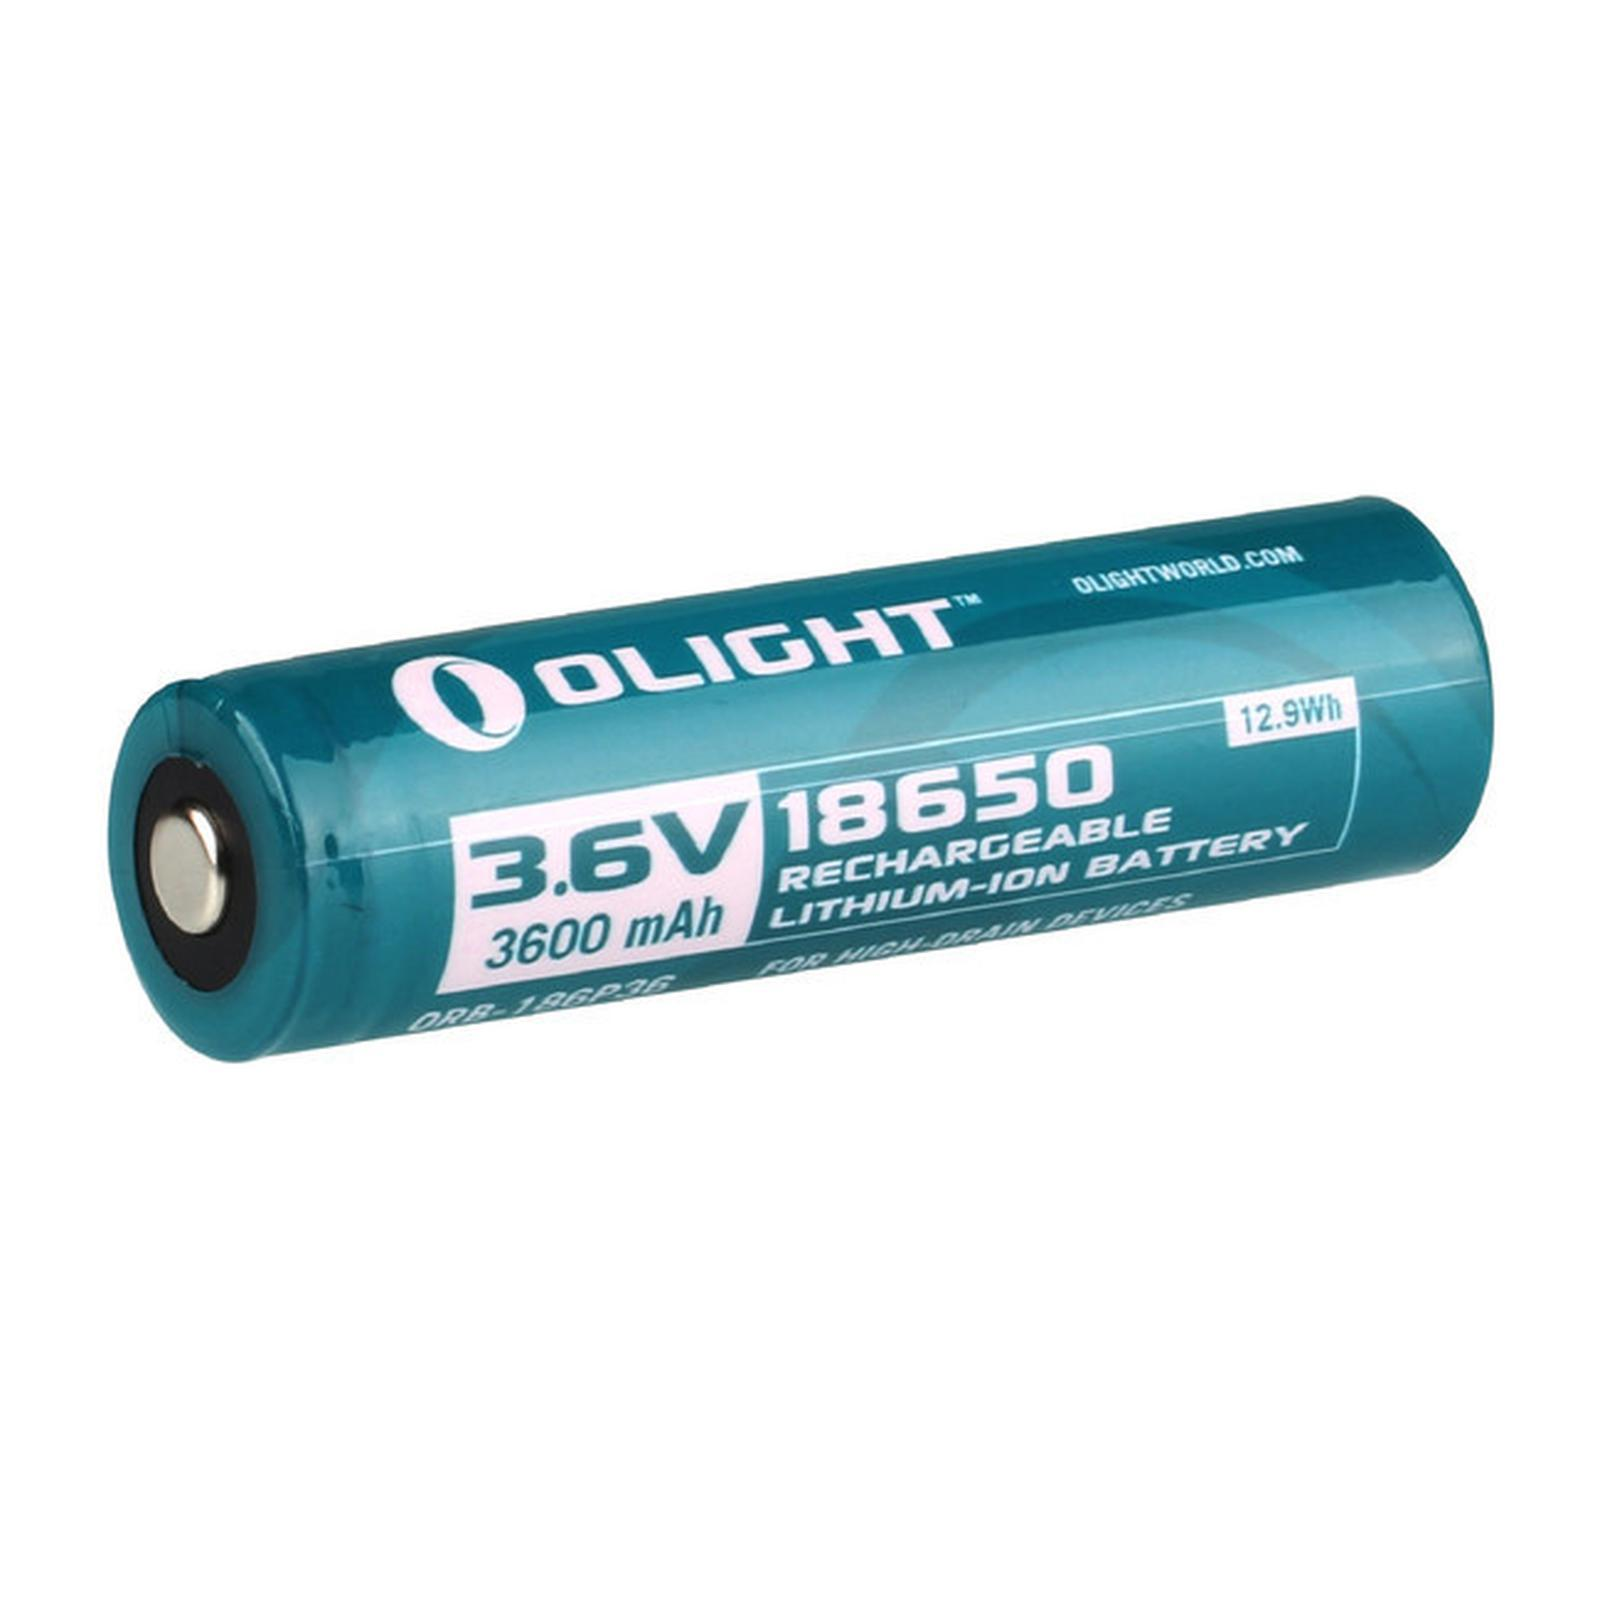 АККУМУЛЯТОР LI-ION OLIGHT ORB-186P36 18650 3,7 В. 3600 MAH 10pcs 2017 new 18650 lithium li ion battery gtf 9900mah rechargeable battery for led flashlight torch low reoccurring wholesale